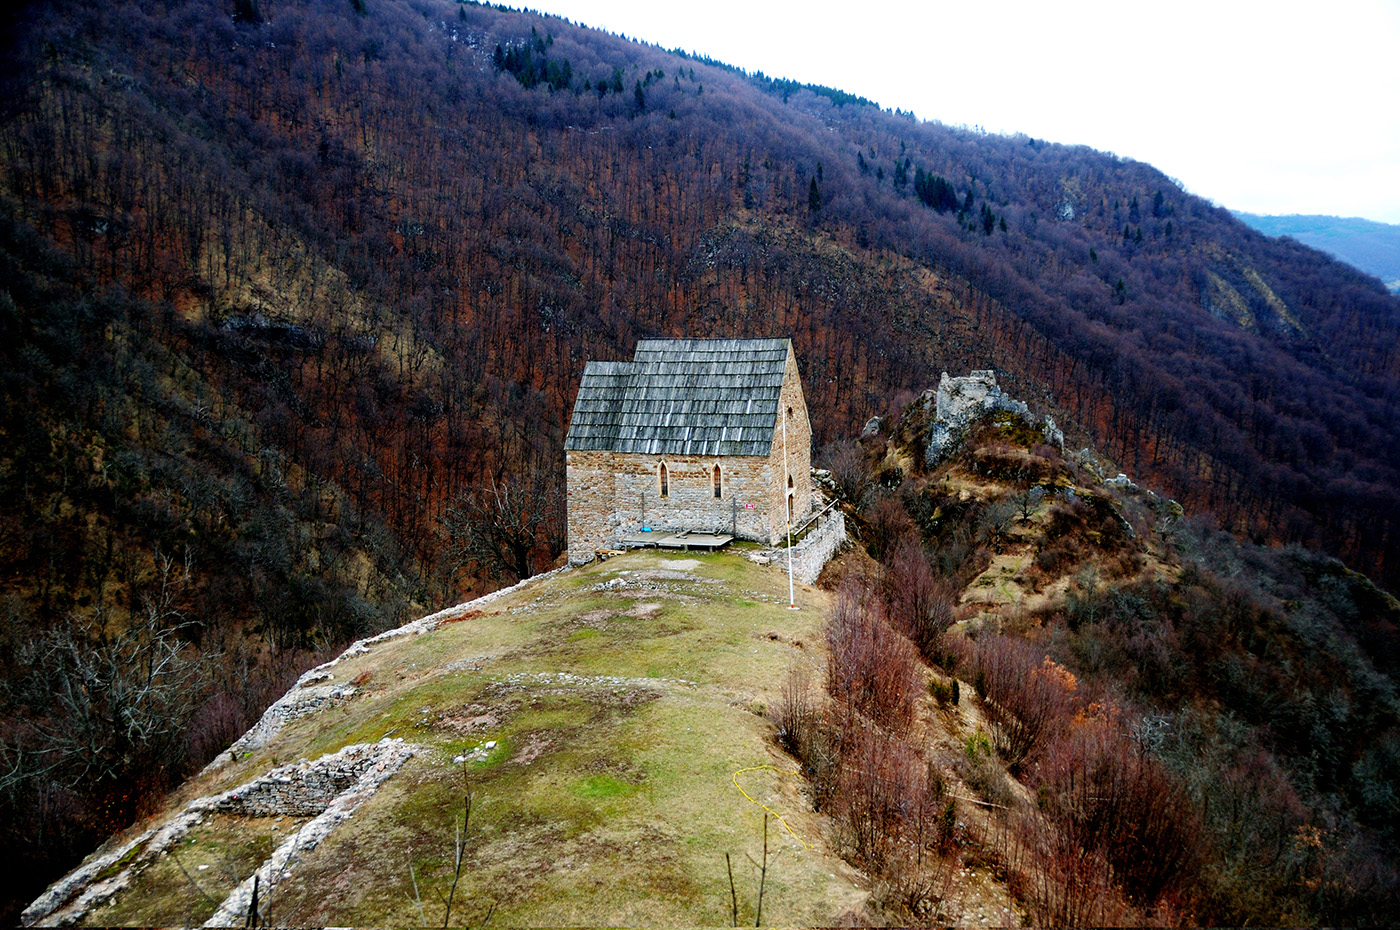 Bobovac and Kraljeva Sutjeska